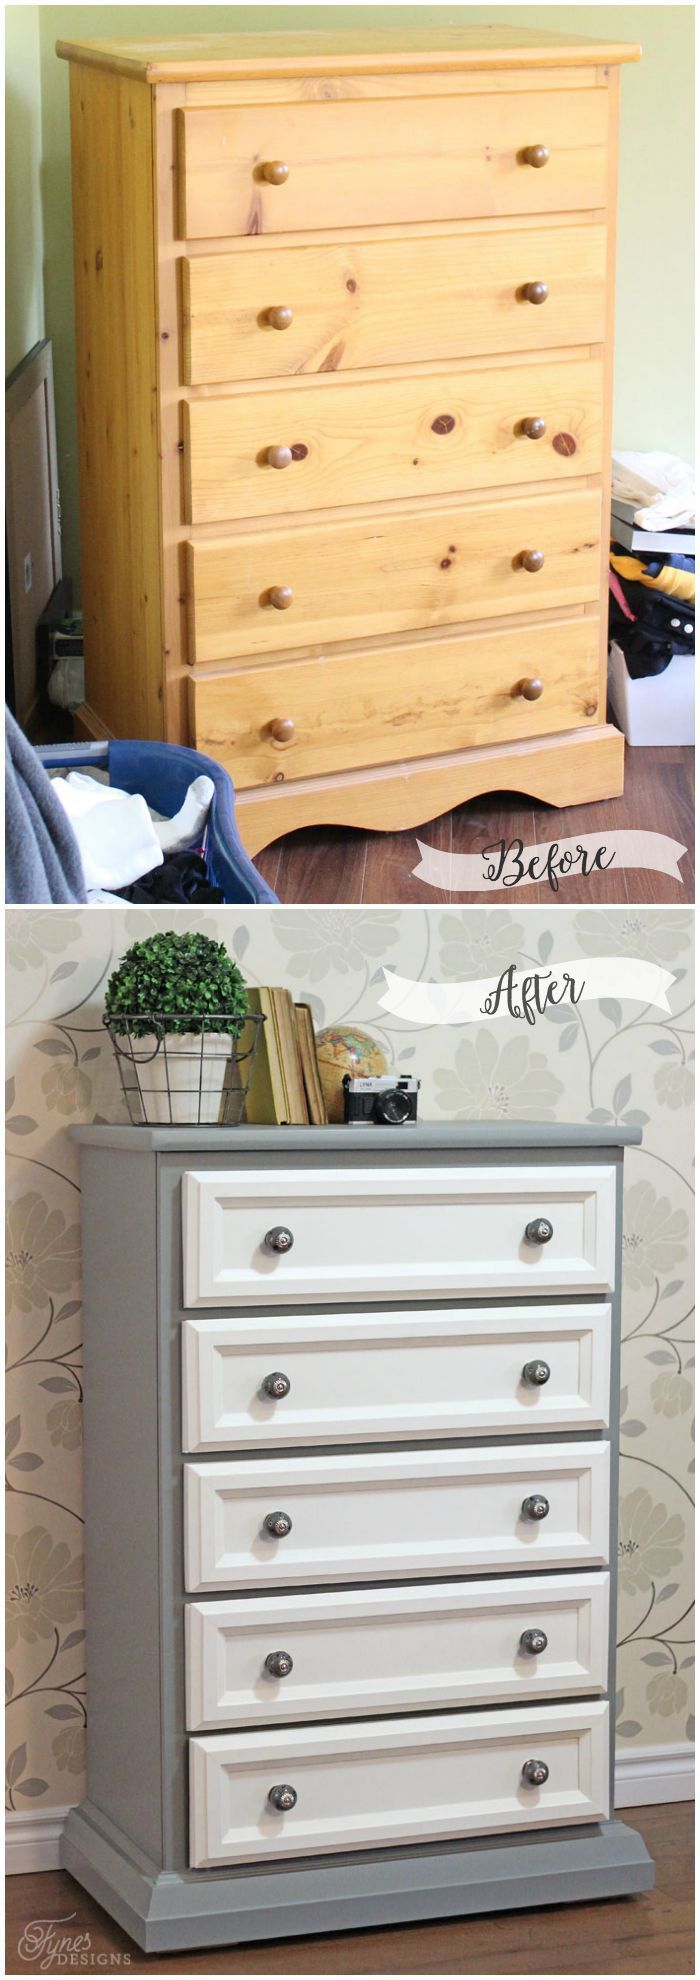 Tall Dresser Makeover Tutorial With Trim And Paint For The